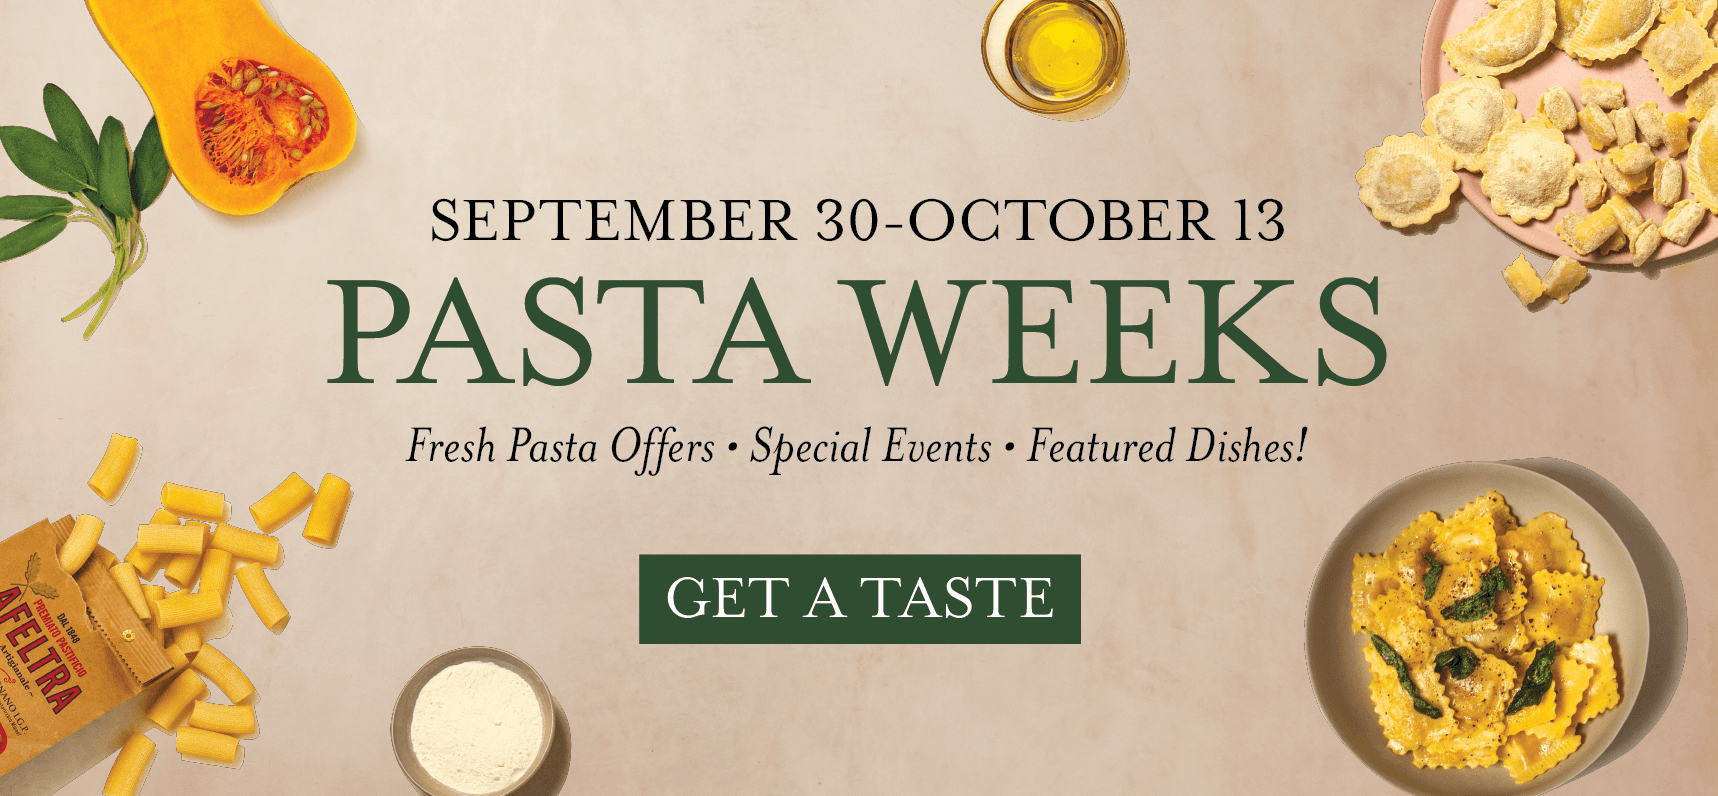 Pasta Weeks at Eataly NYC Downtown